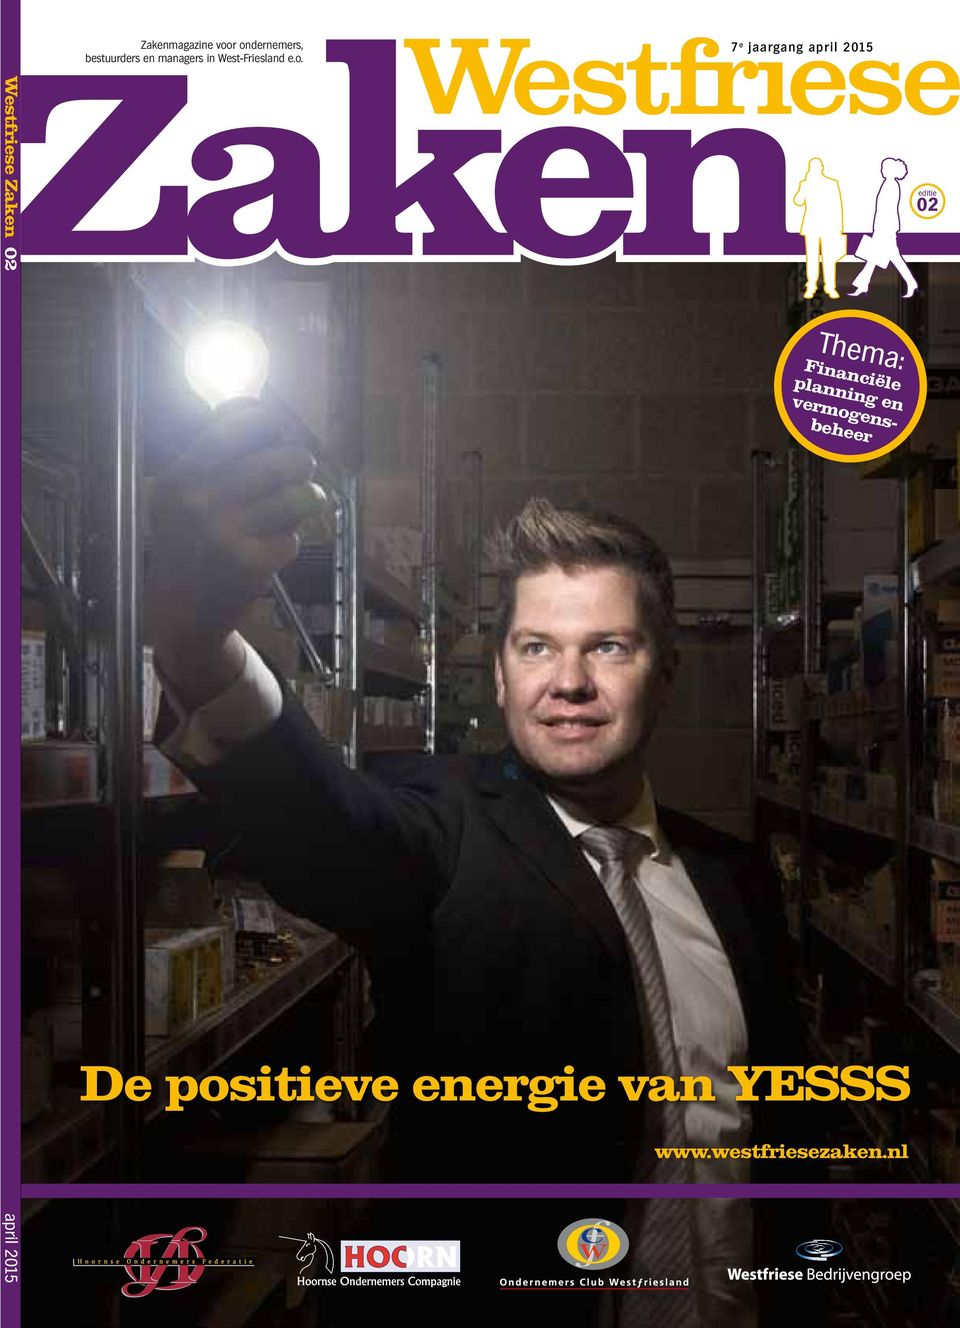 7 e jaargang april 2015 Westfriese Zaken 02 april 2015